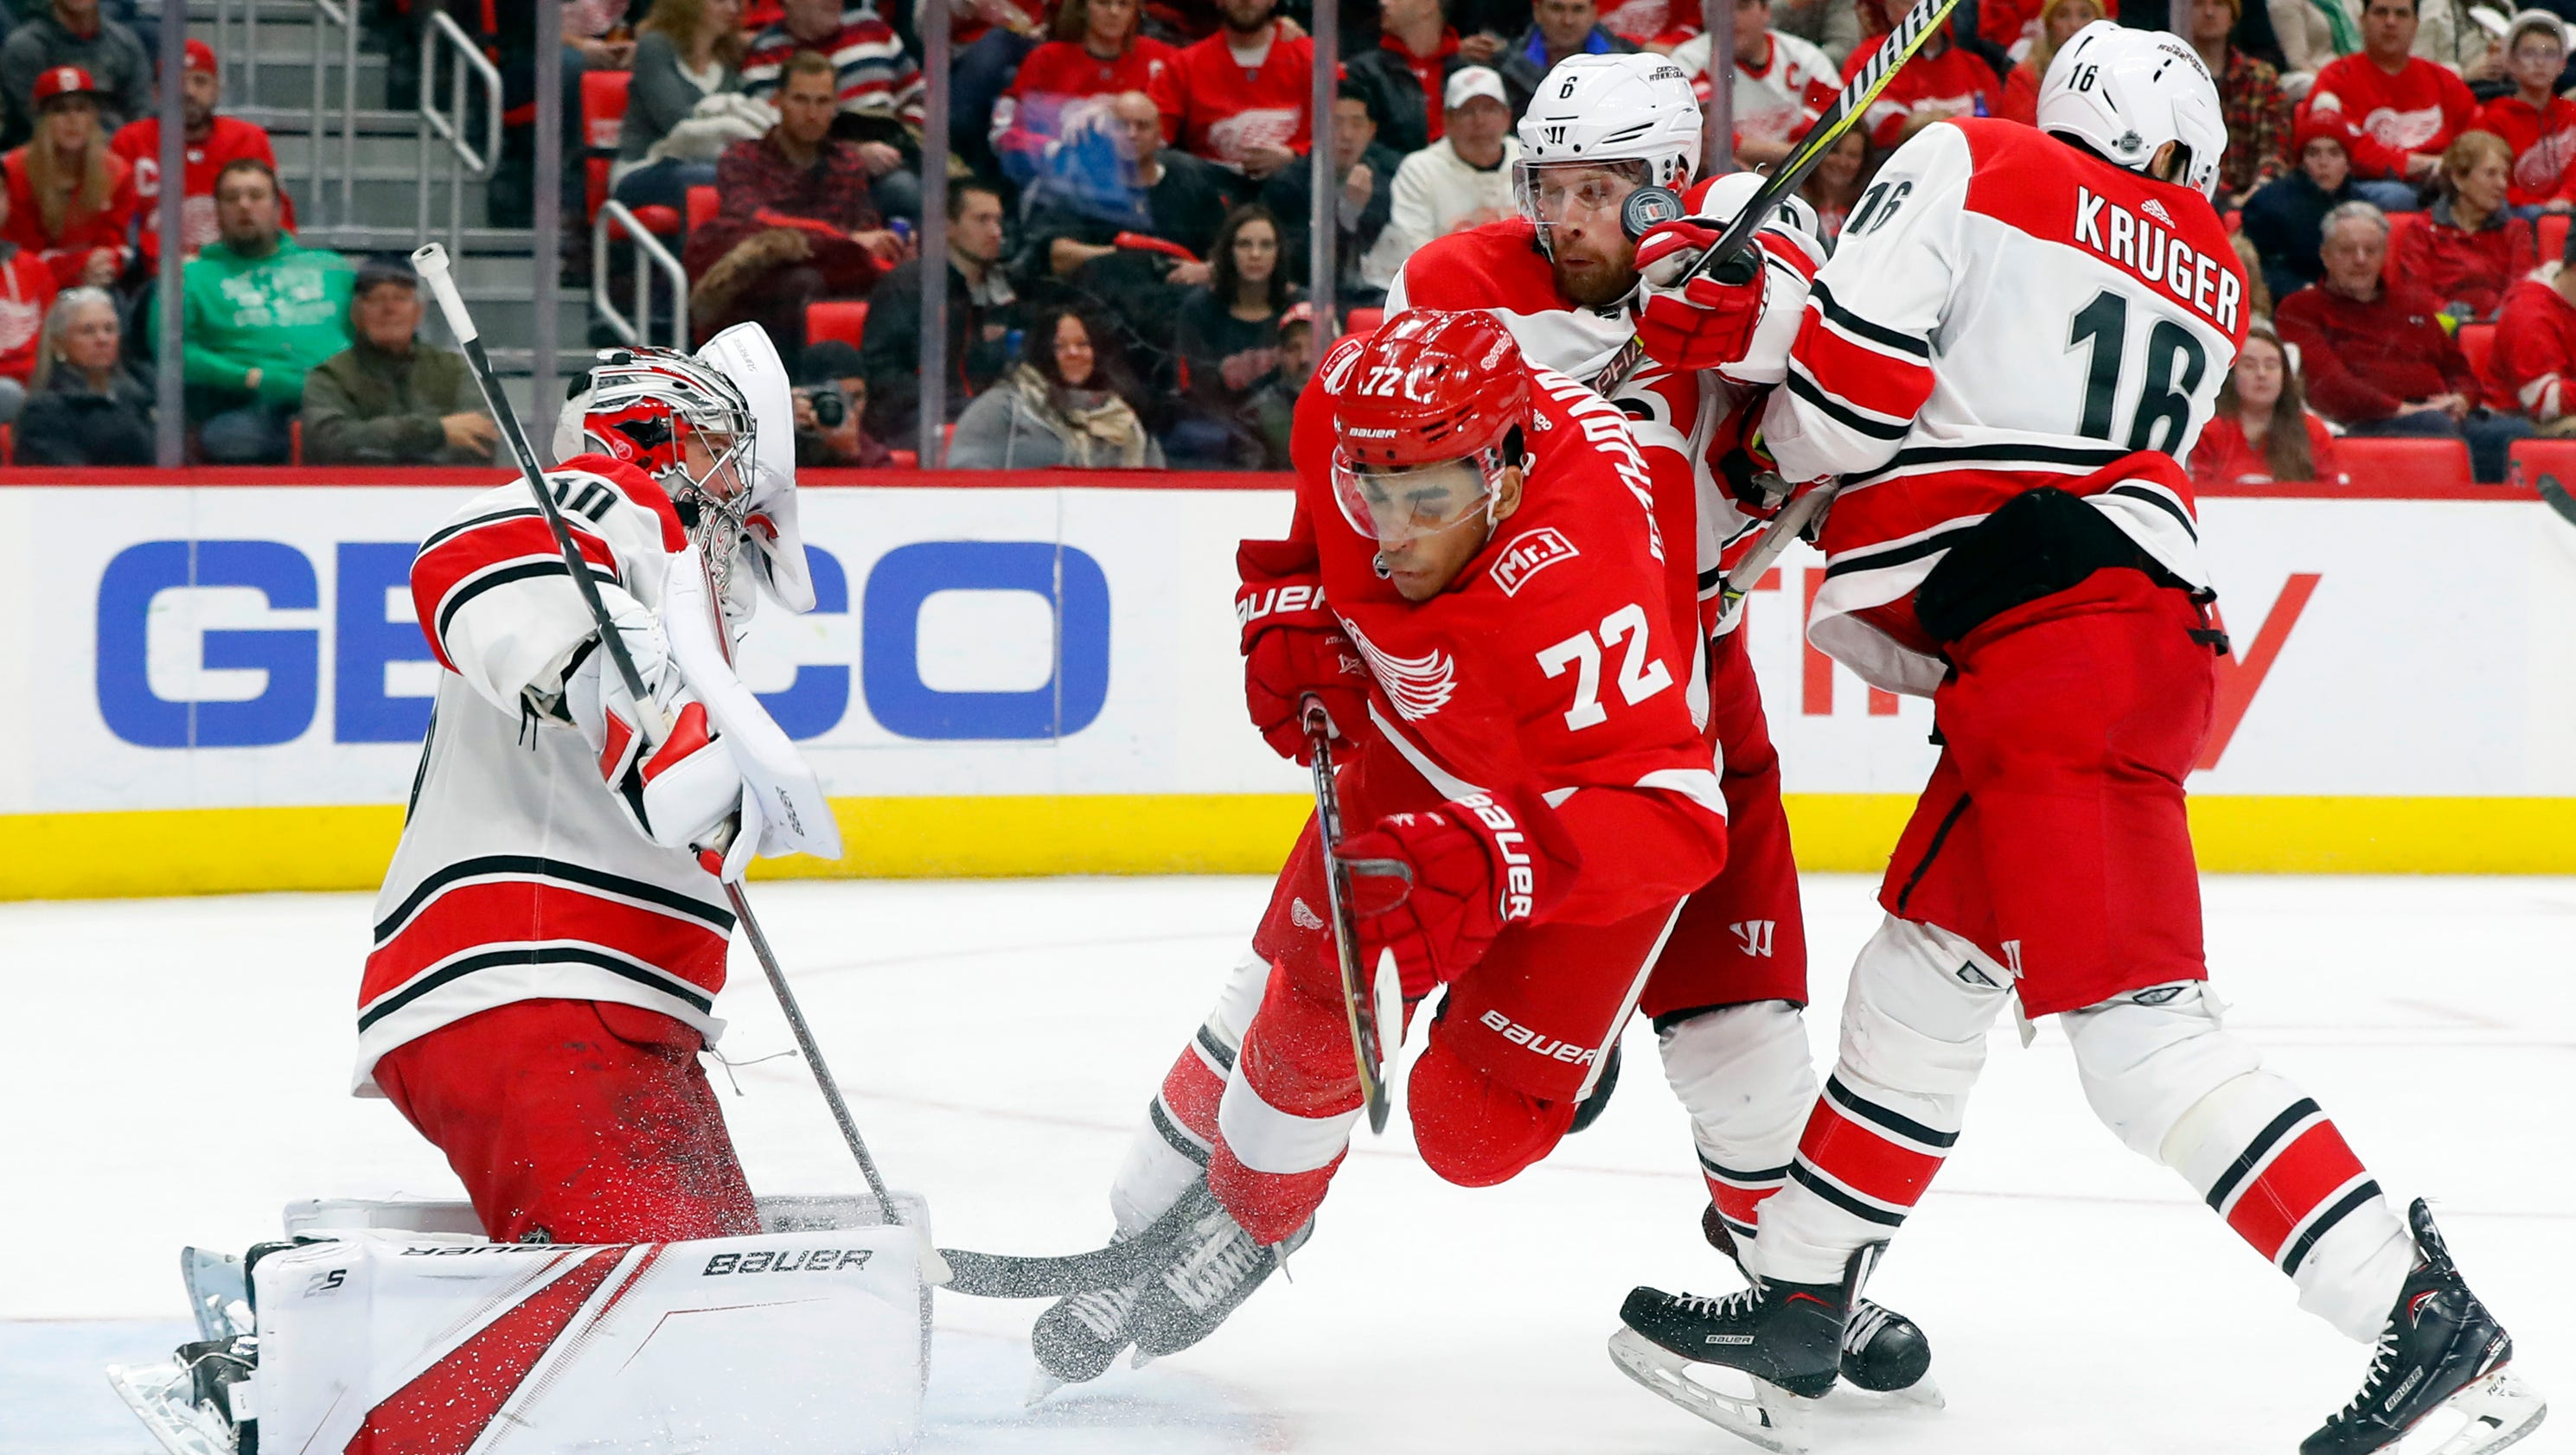 636520781455992376-ap-hurricanes-red-wings-hock